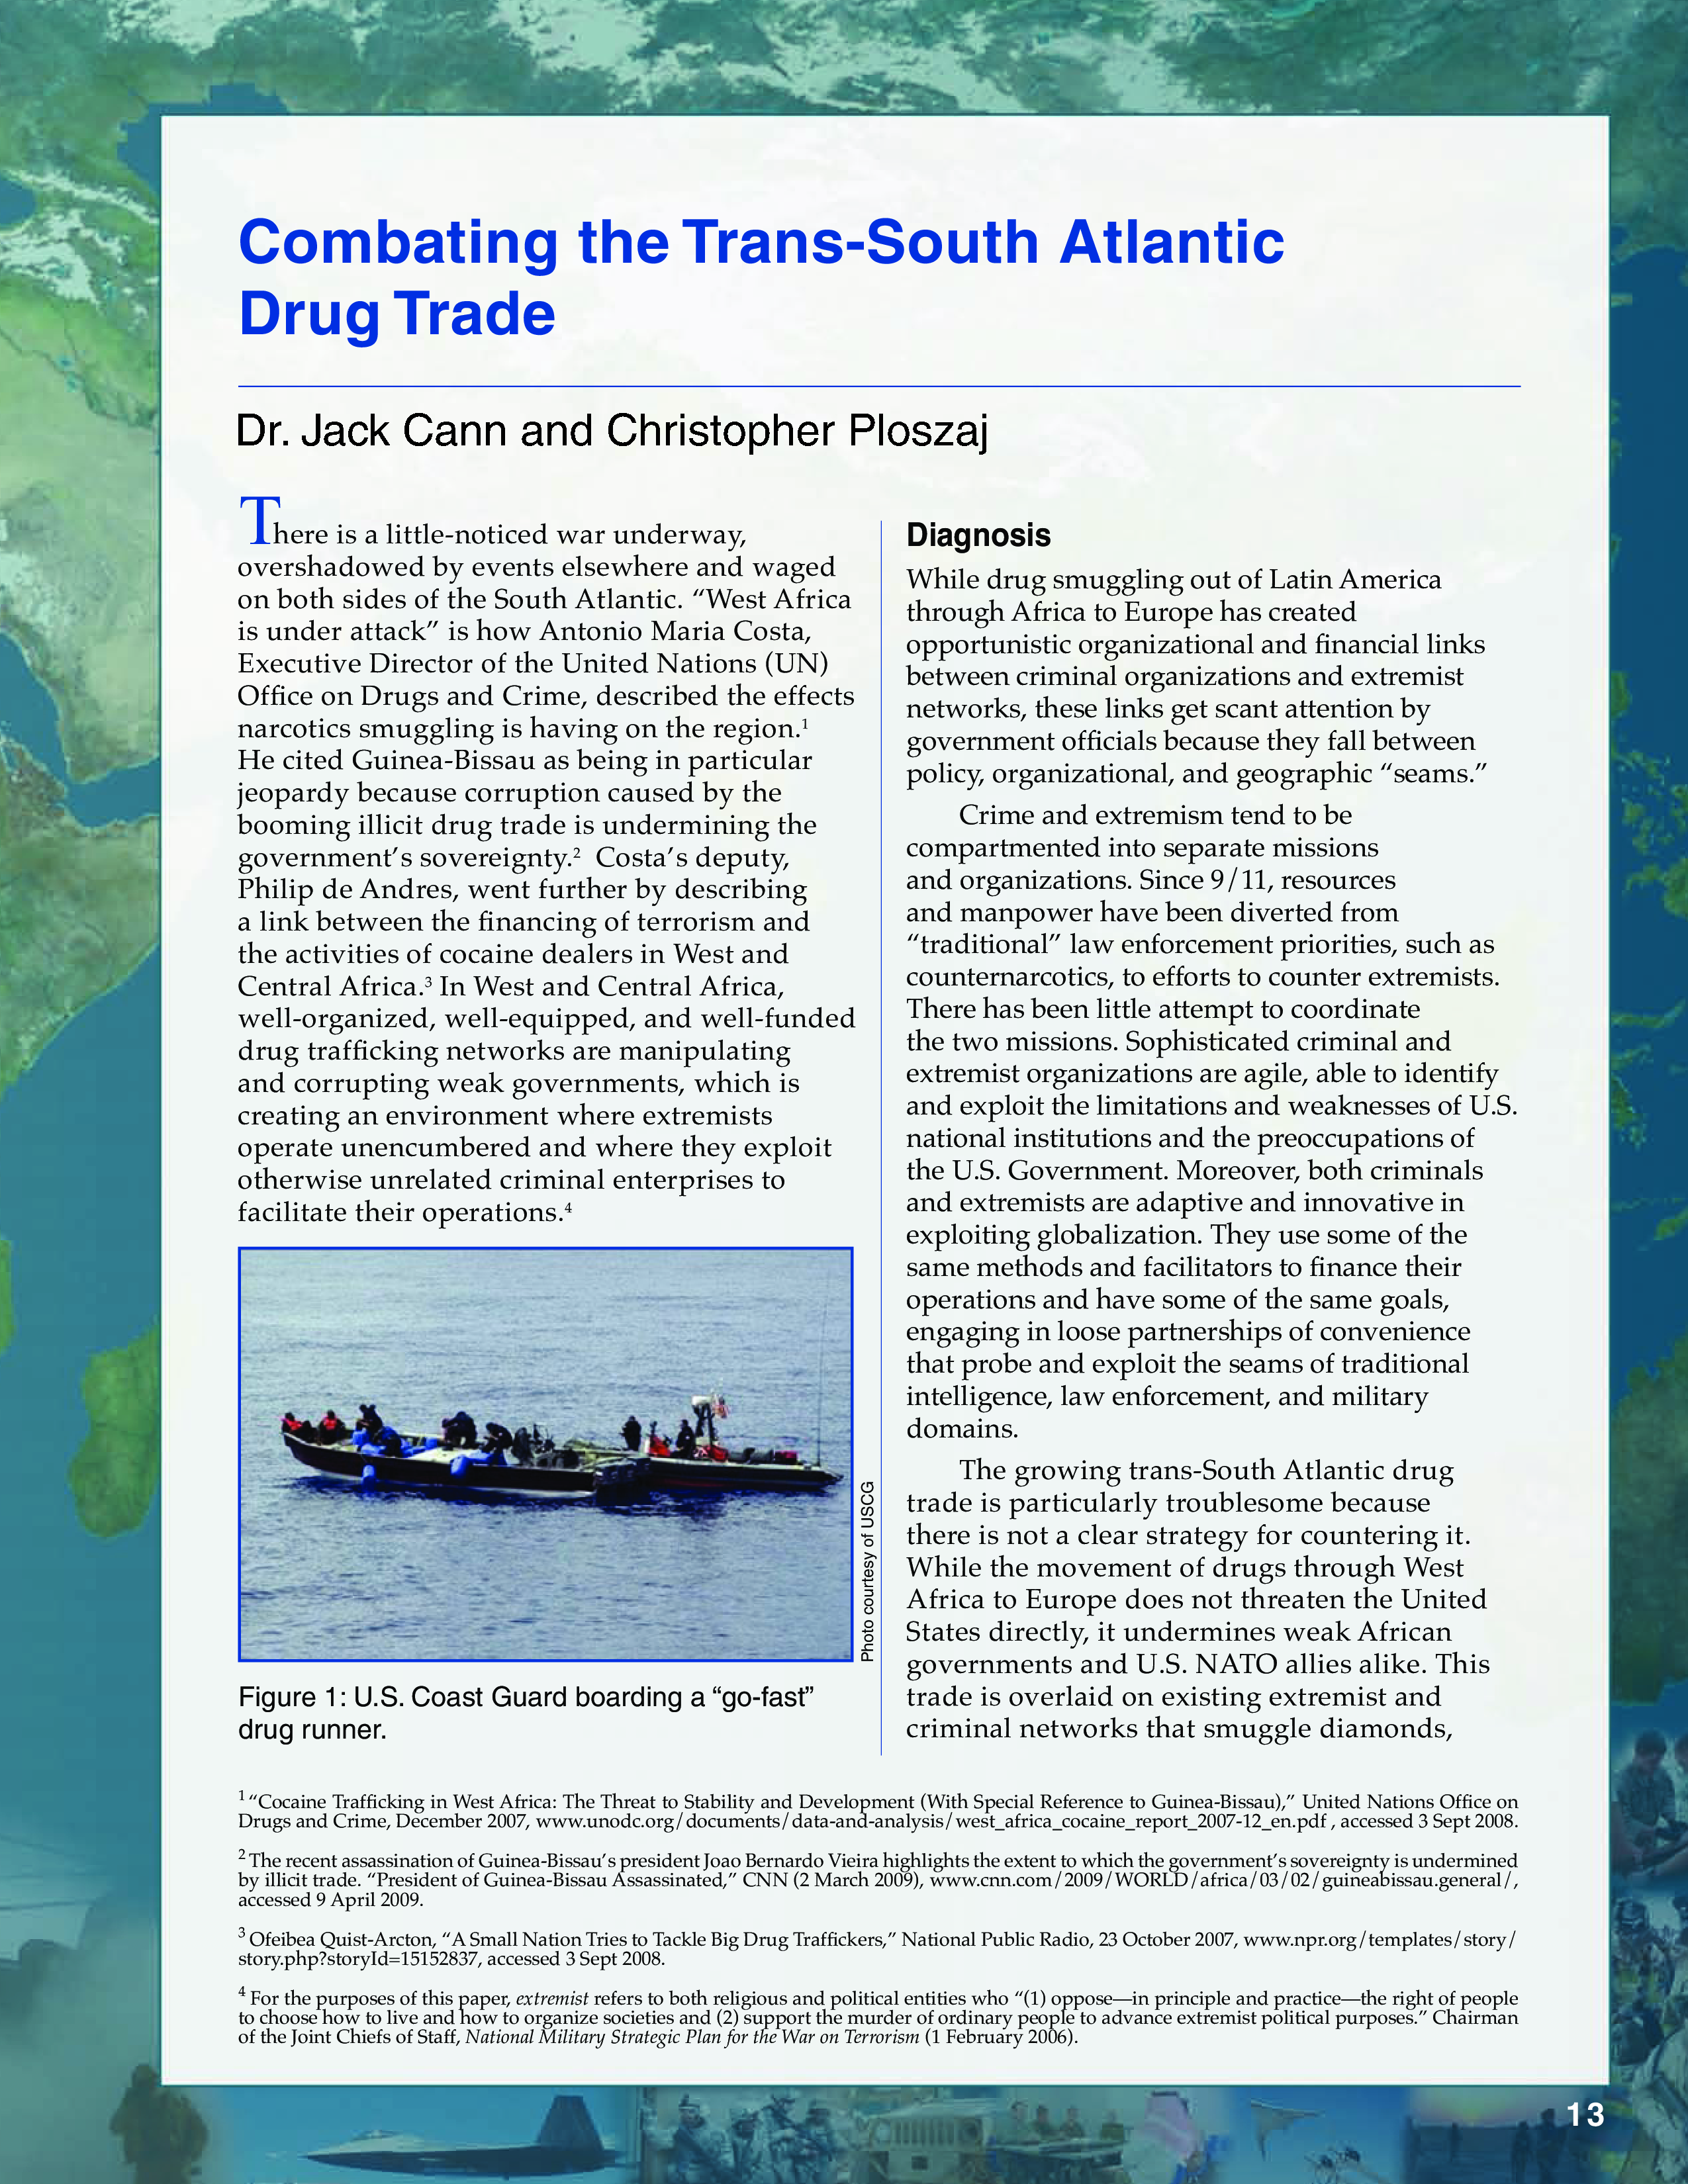 Combating the Trans-South Atlantic Drug Trade